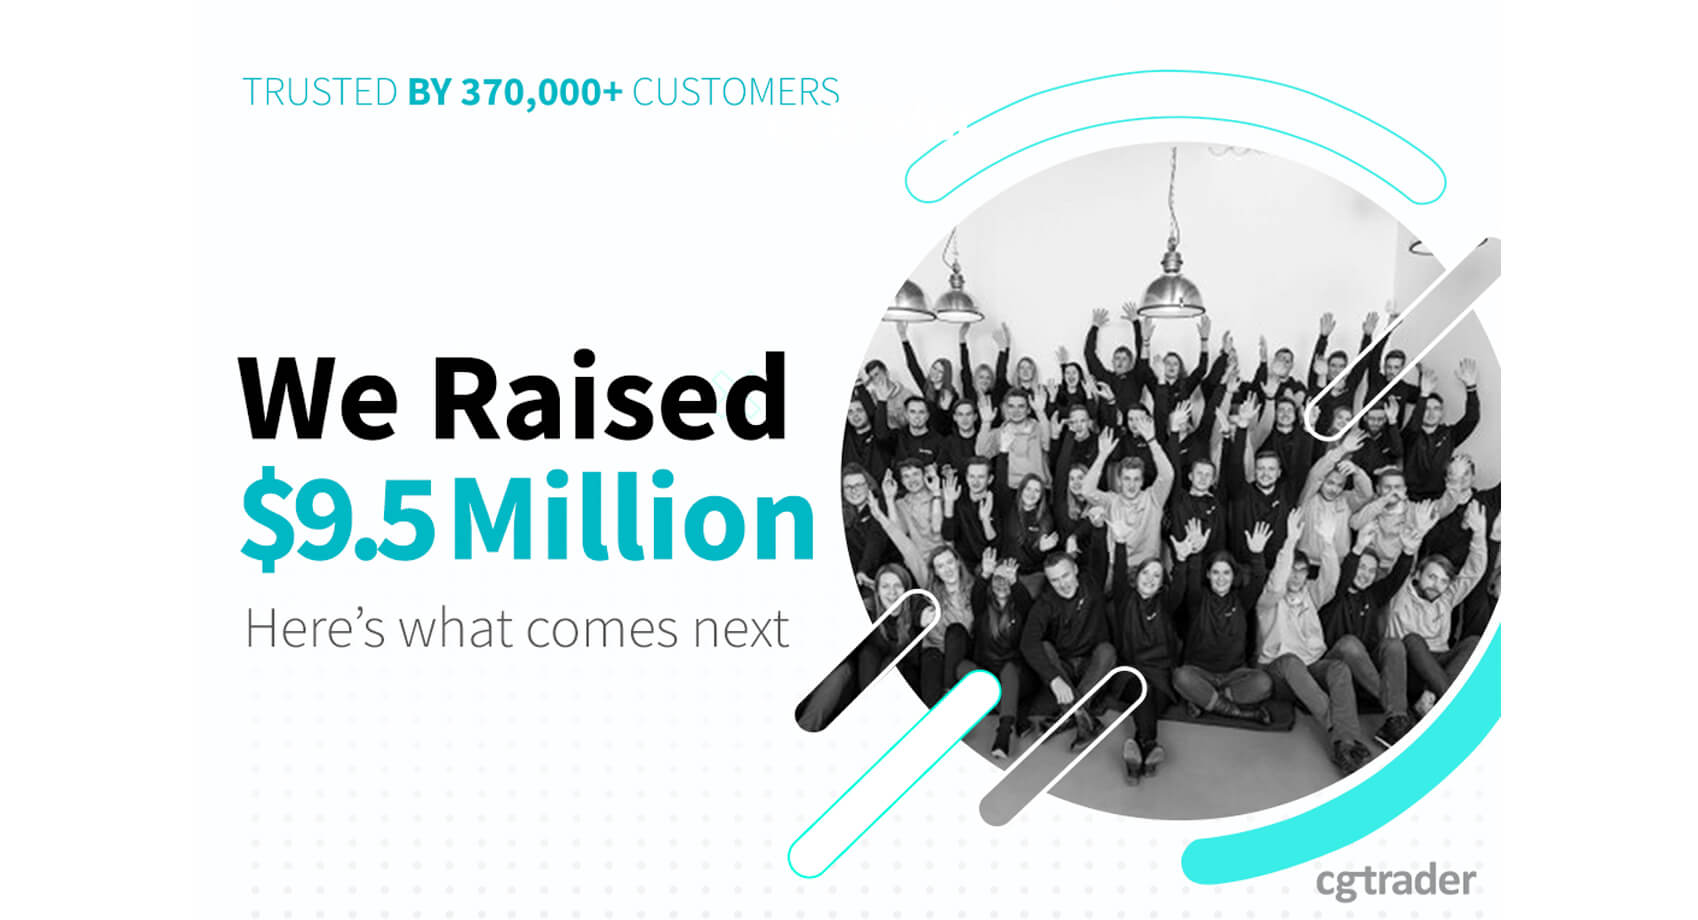 Next chapter: we have raised $9.5M in funding